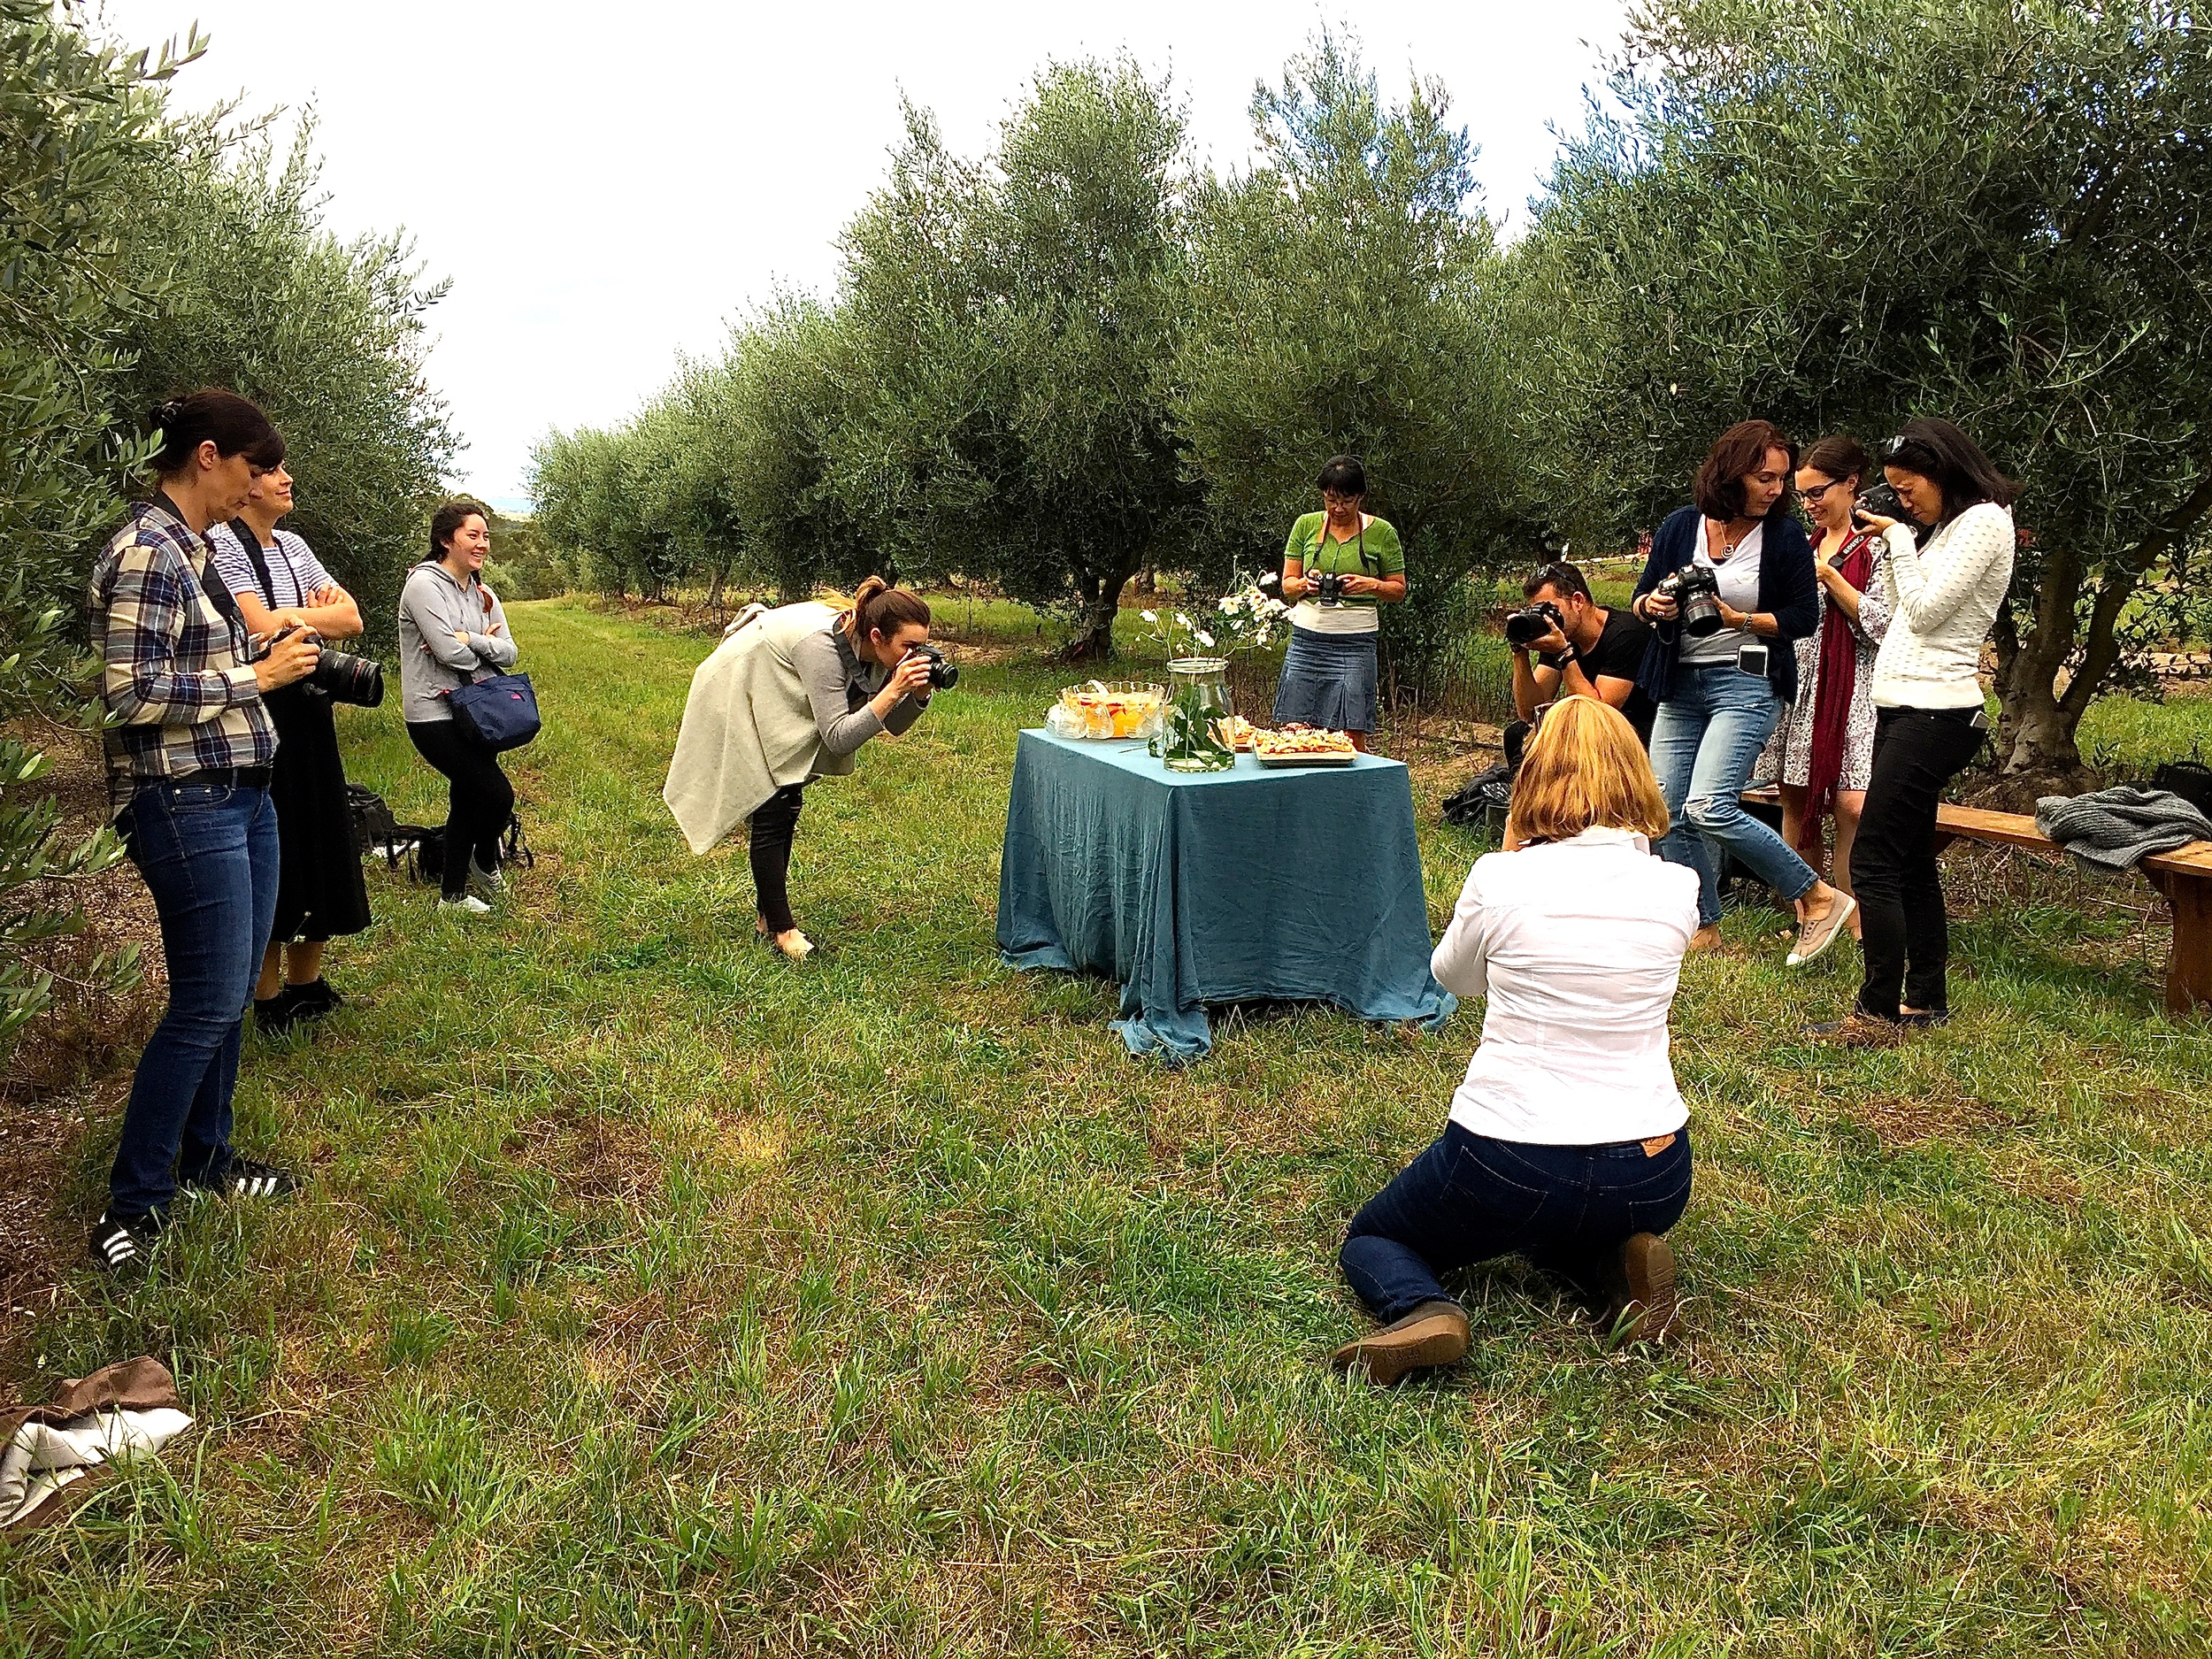 Afternoon refreshments in the olive grove